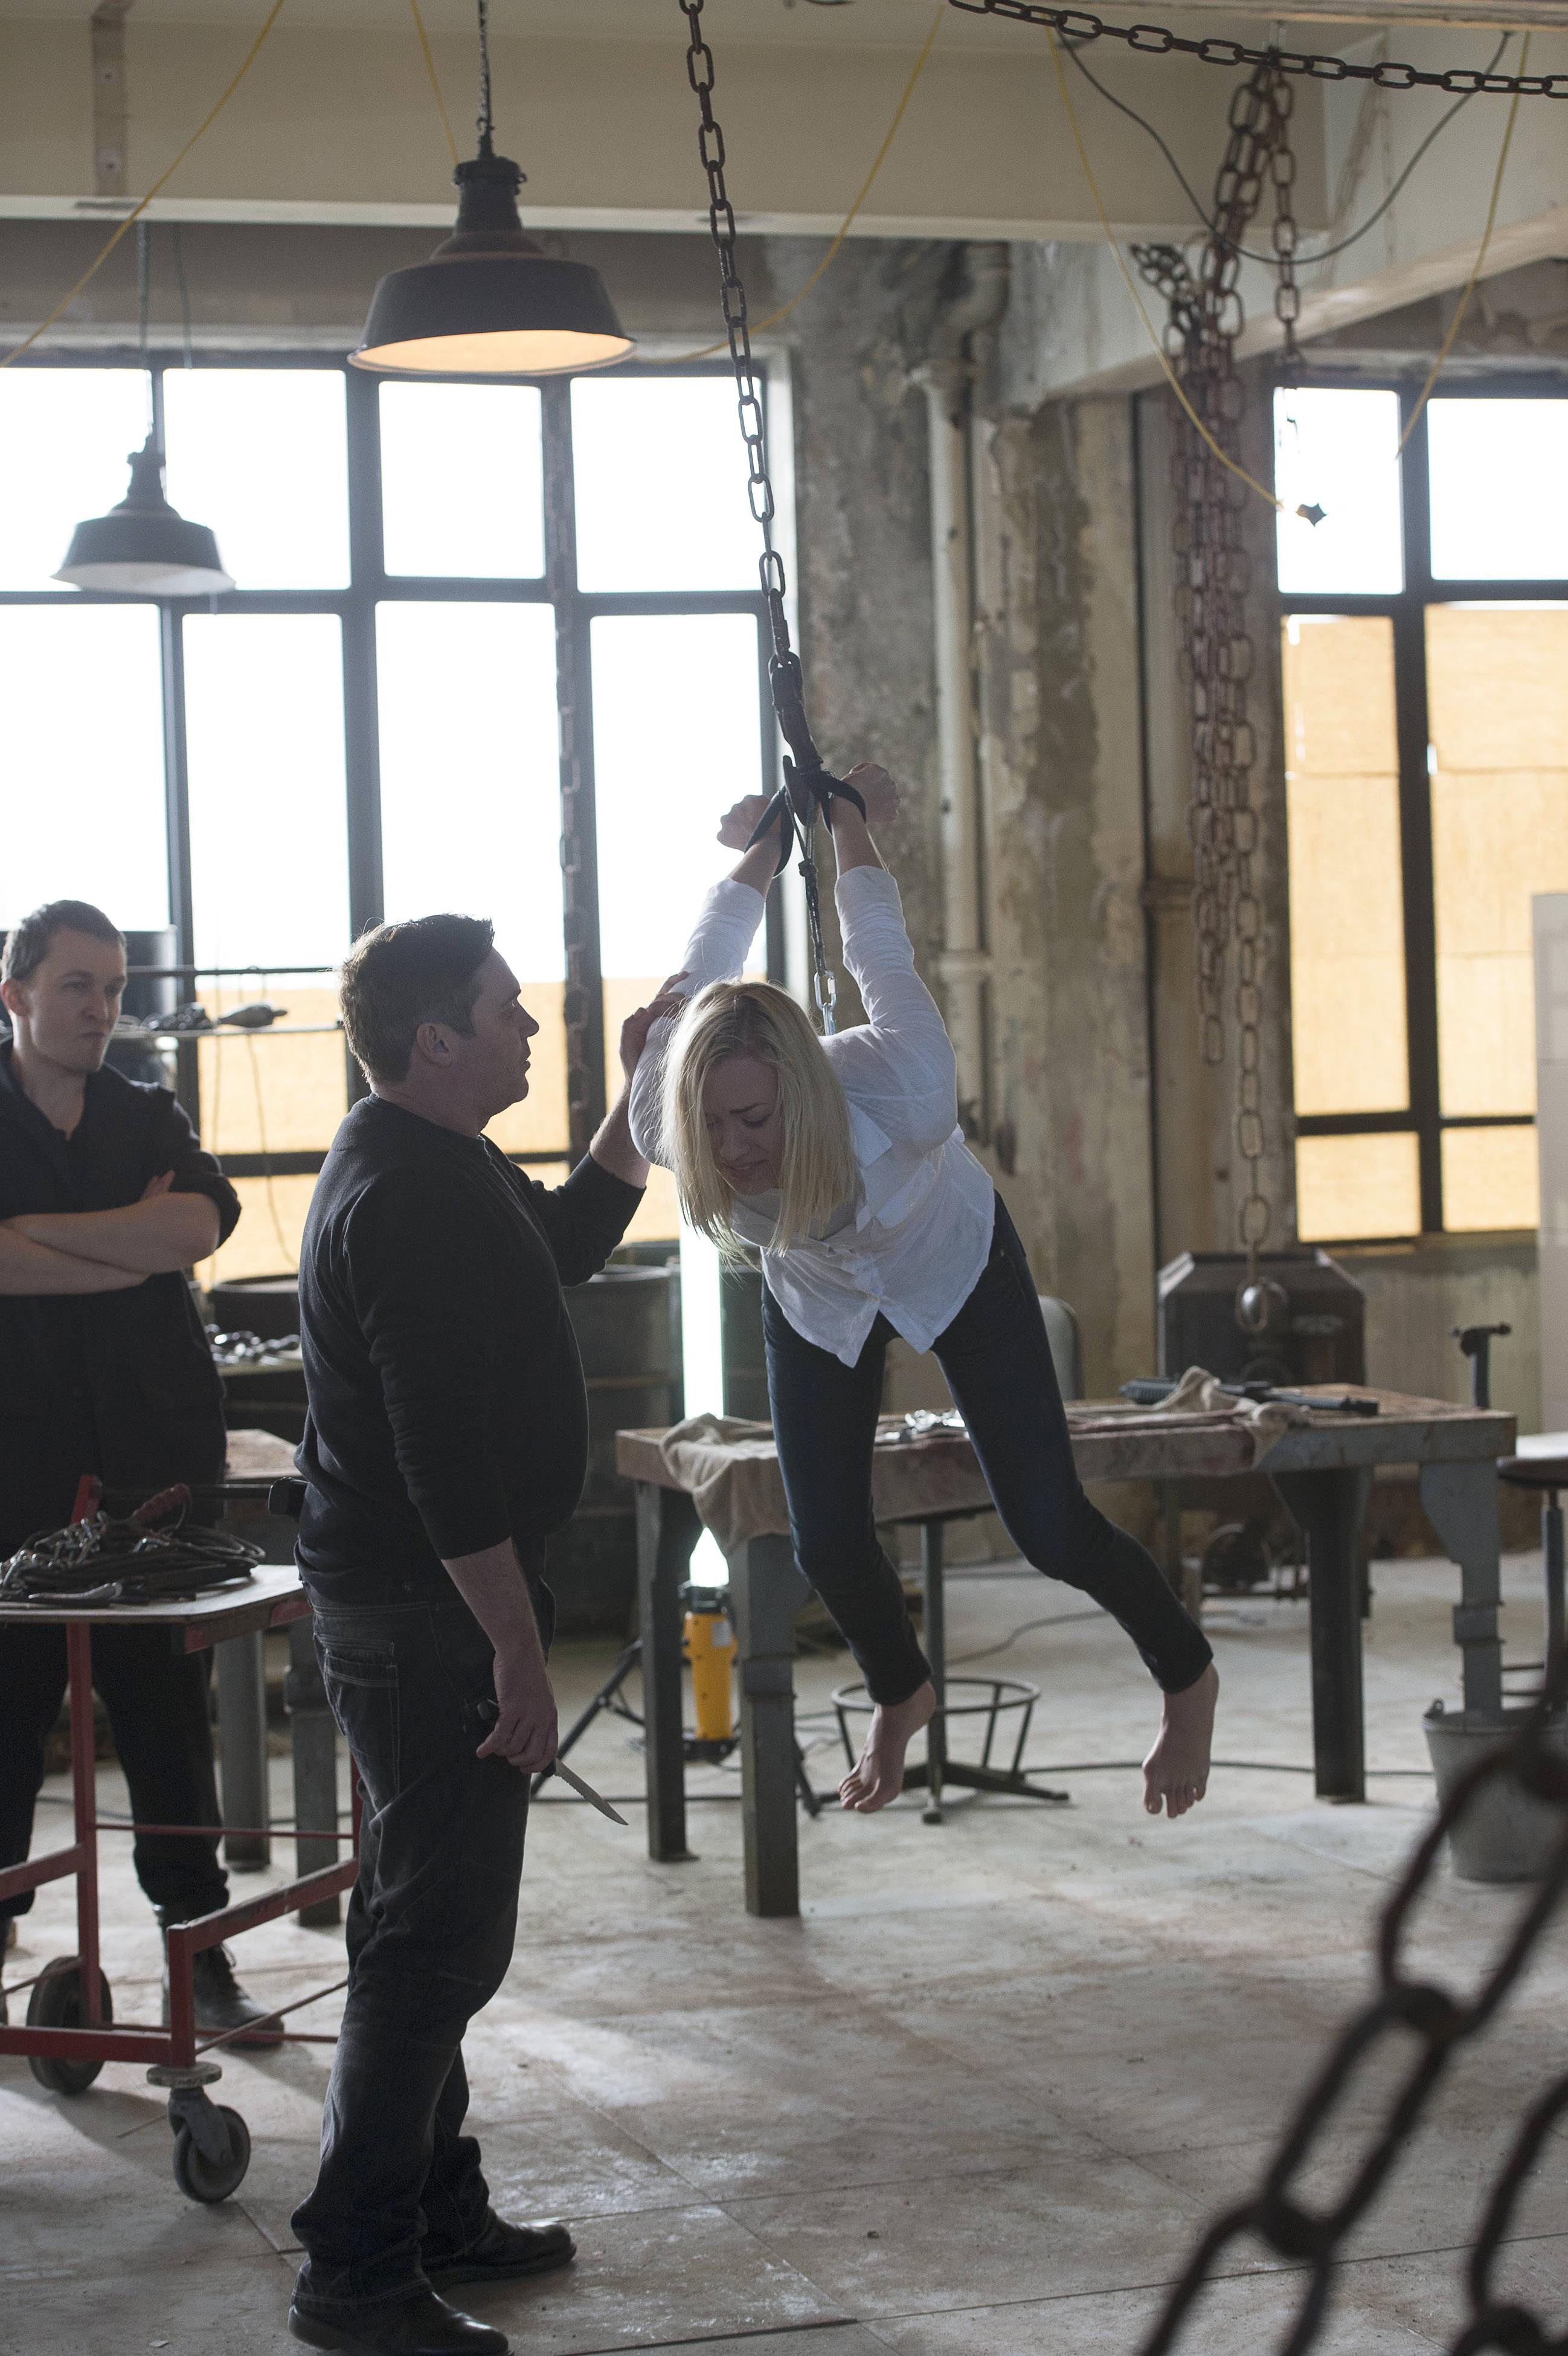 Kate Morgan Yvonne Strahovski Chained And Dangling In 24